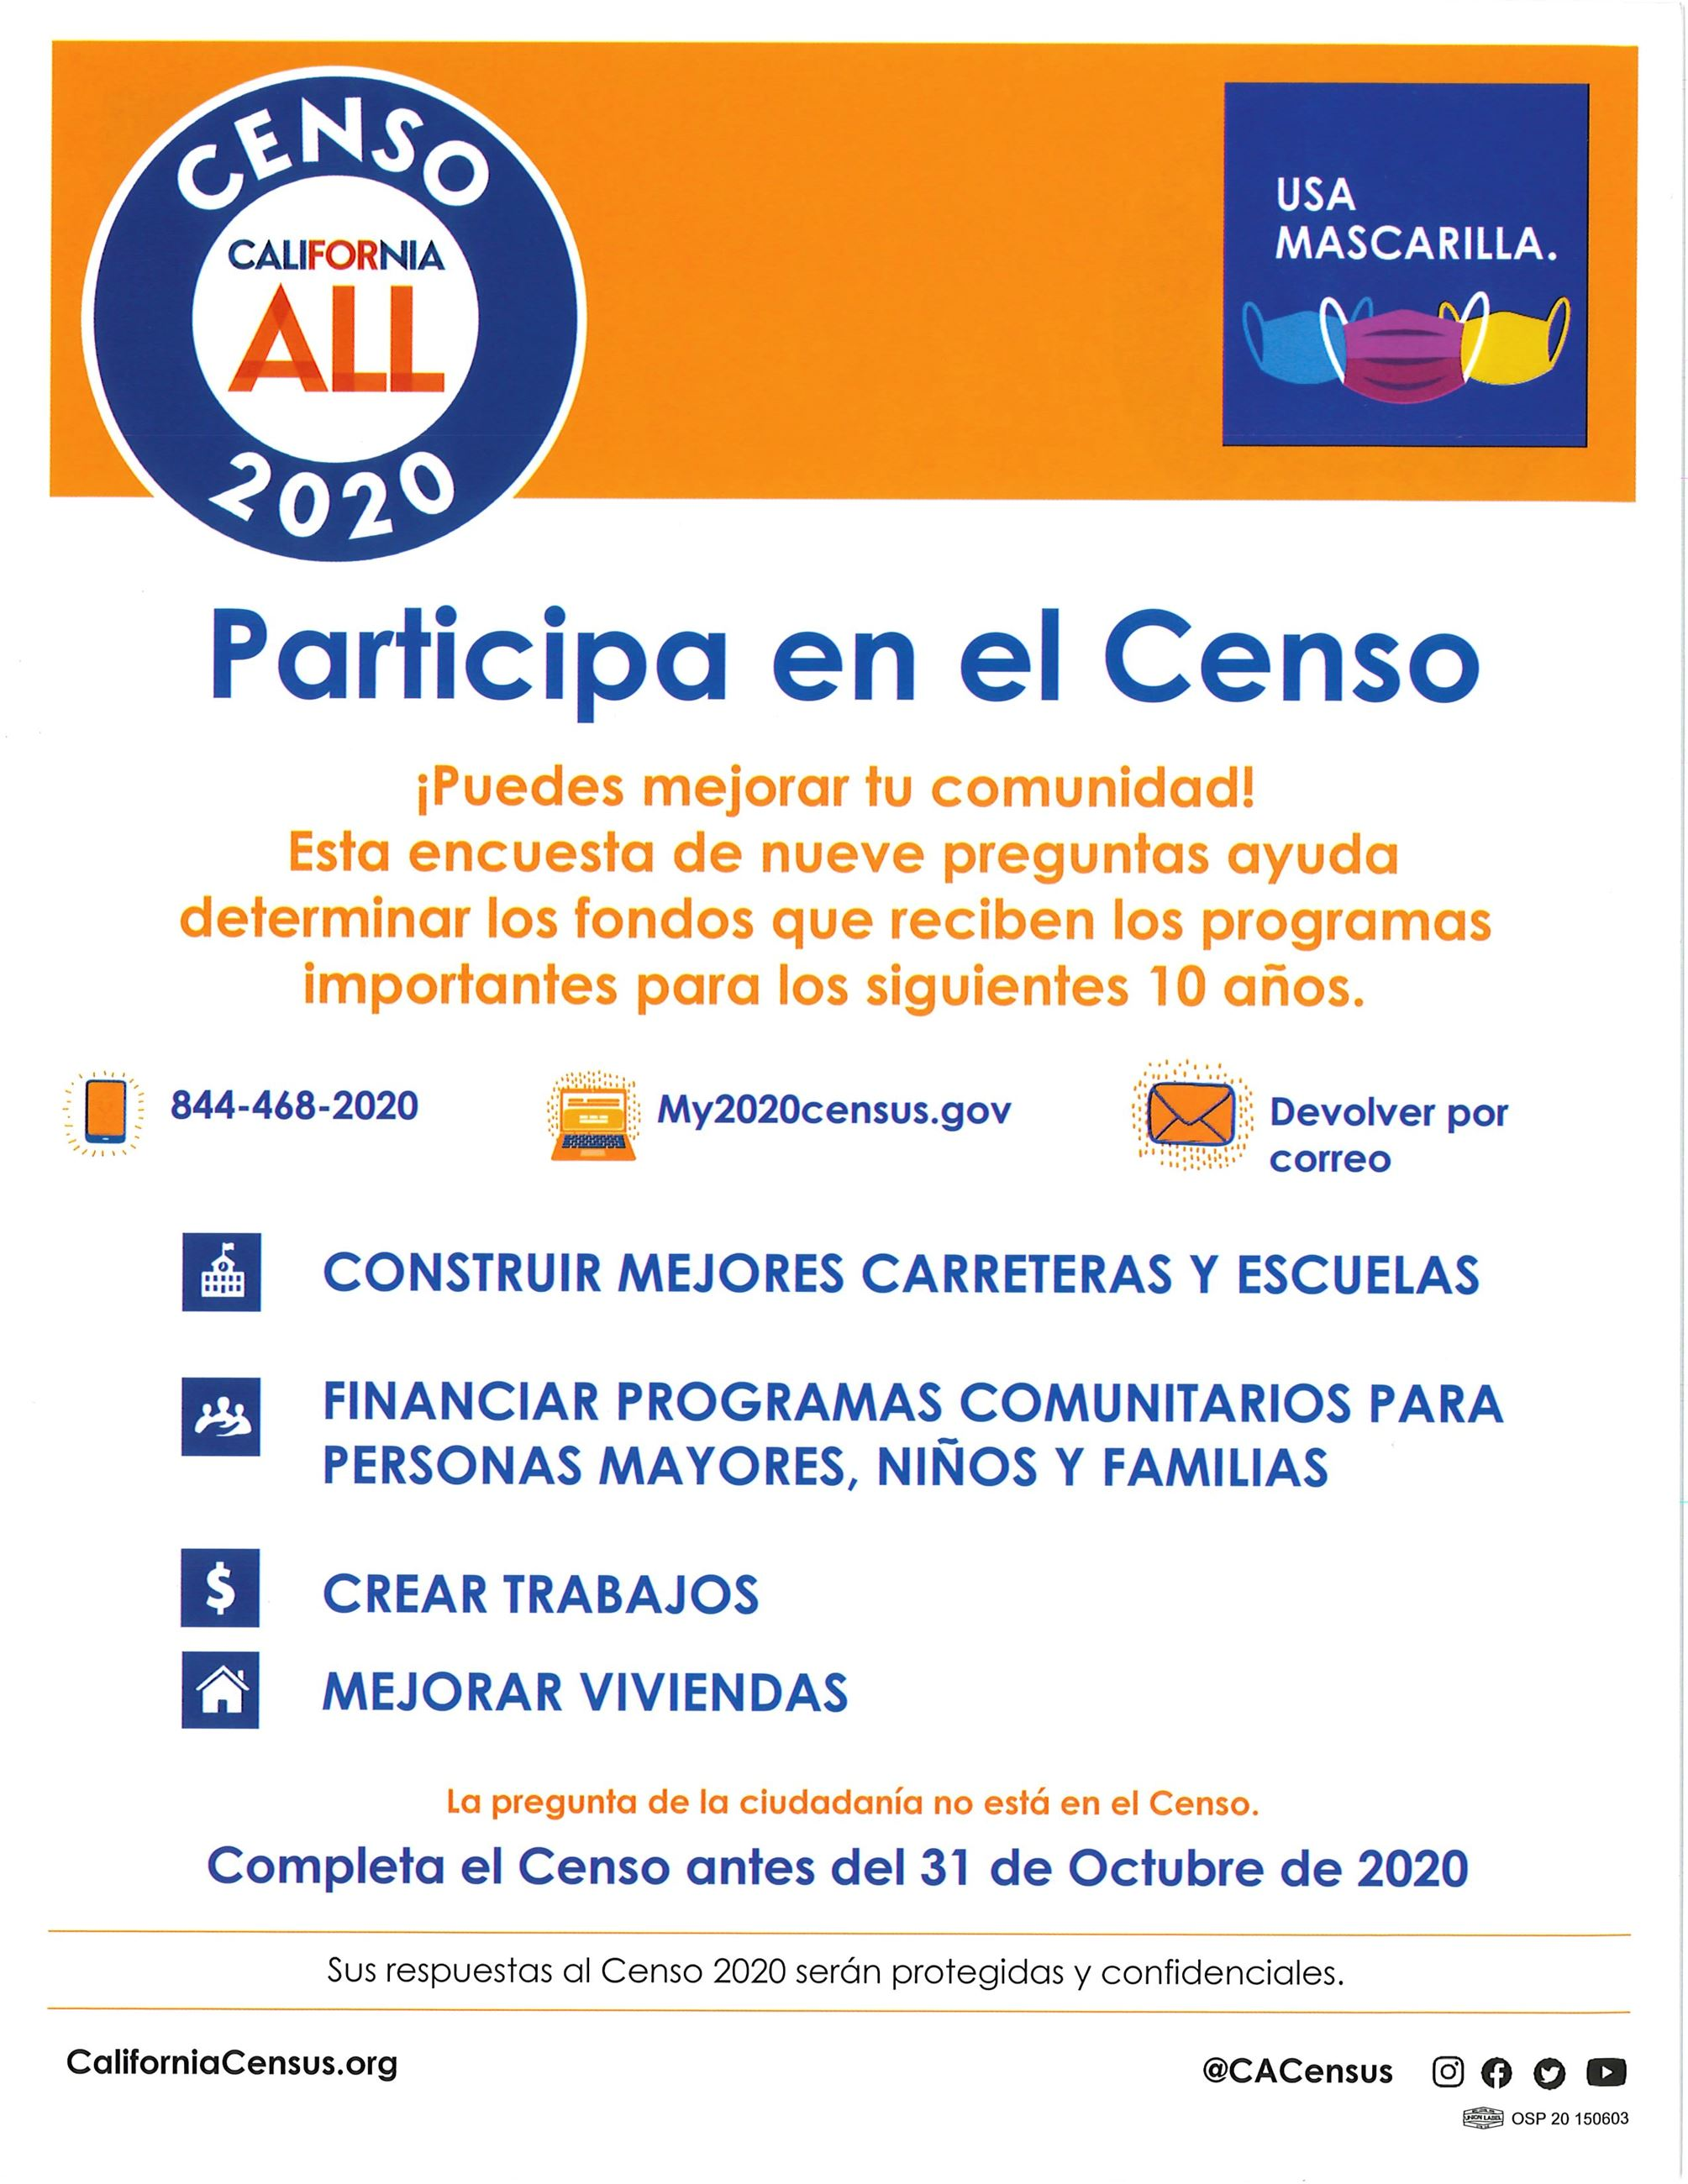 Census flyers